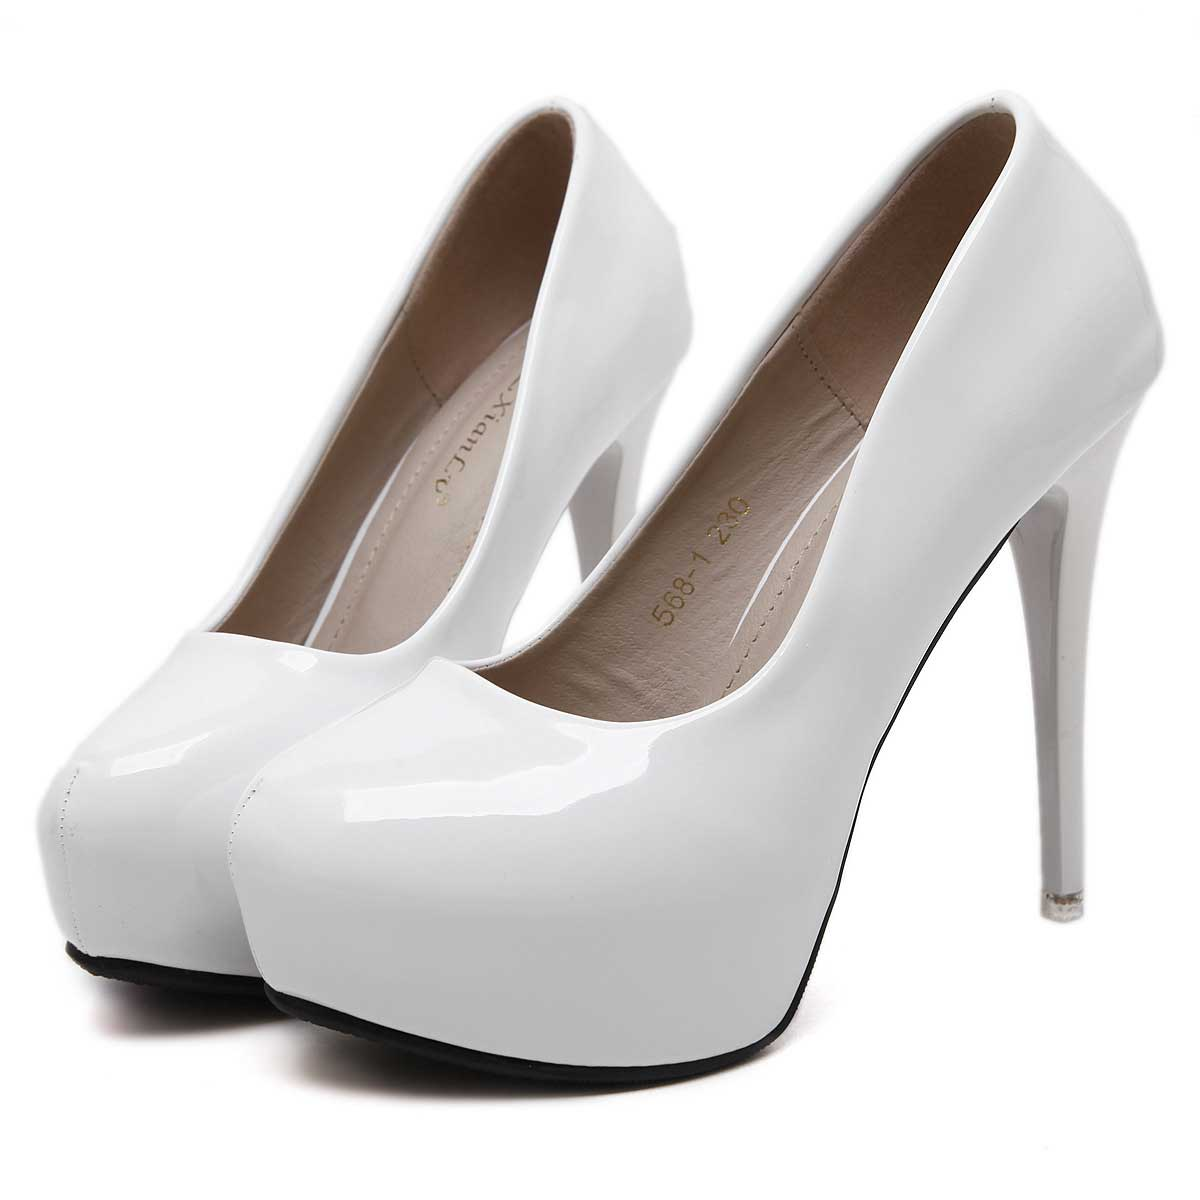 White Round Toe Women's Prom Shoes Stiletto Heels For ...